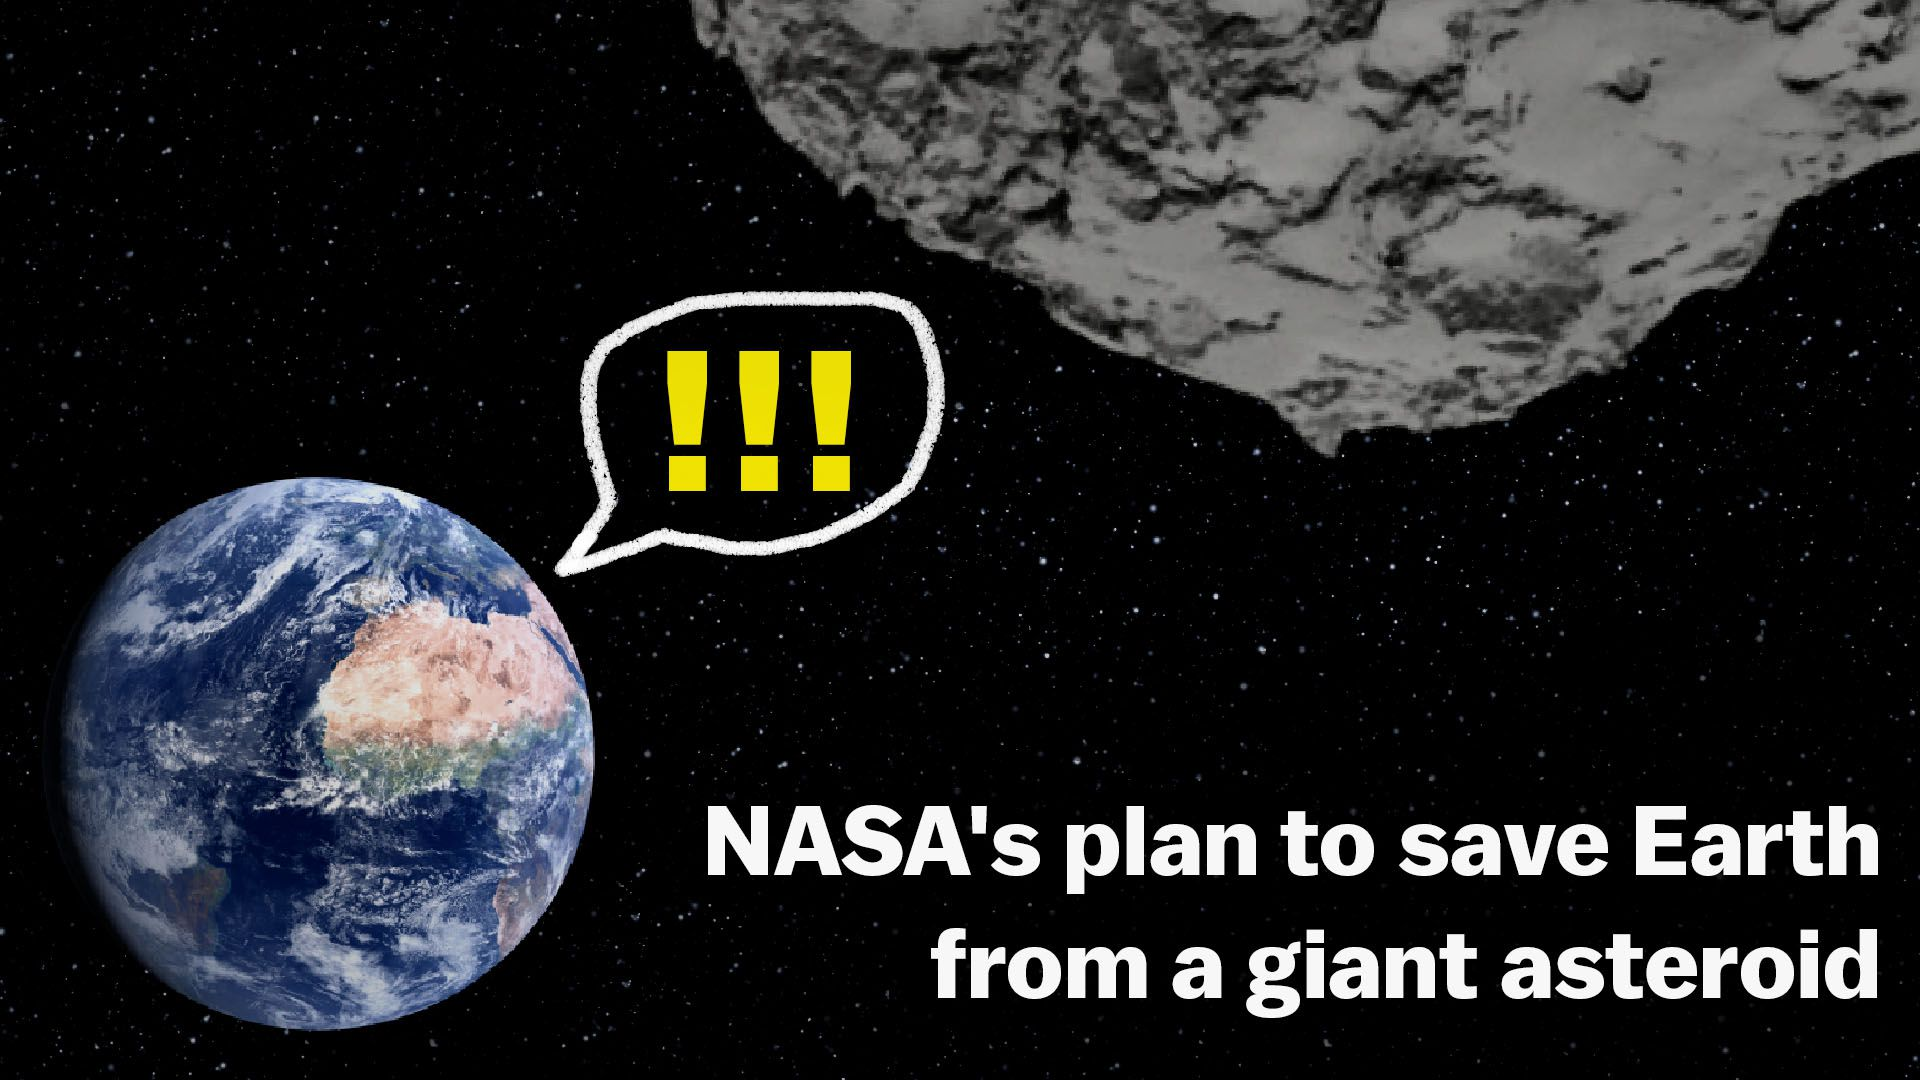 NASA's plan to save Earth from a giant asteroid - Vox